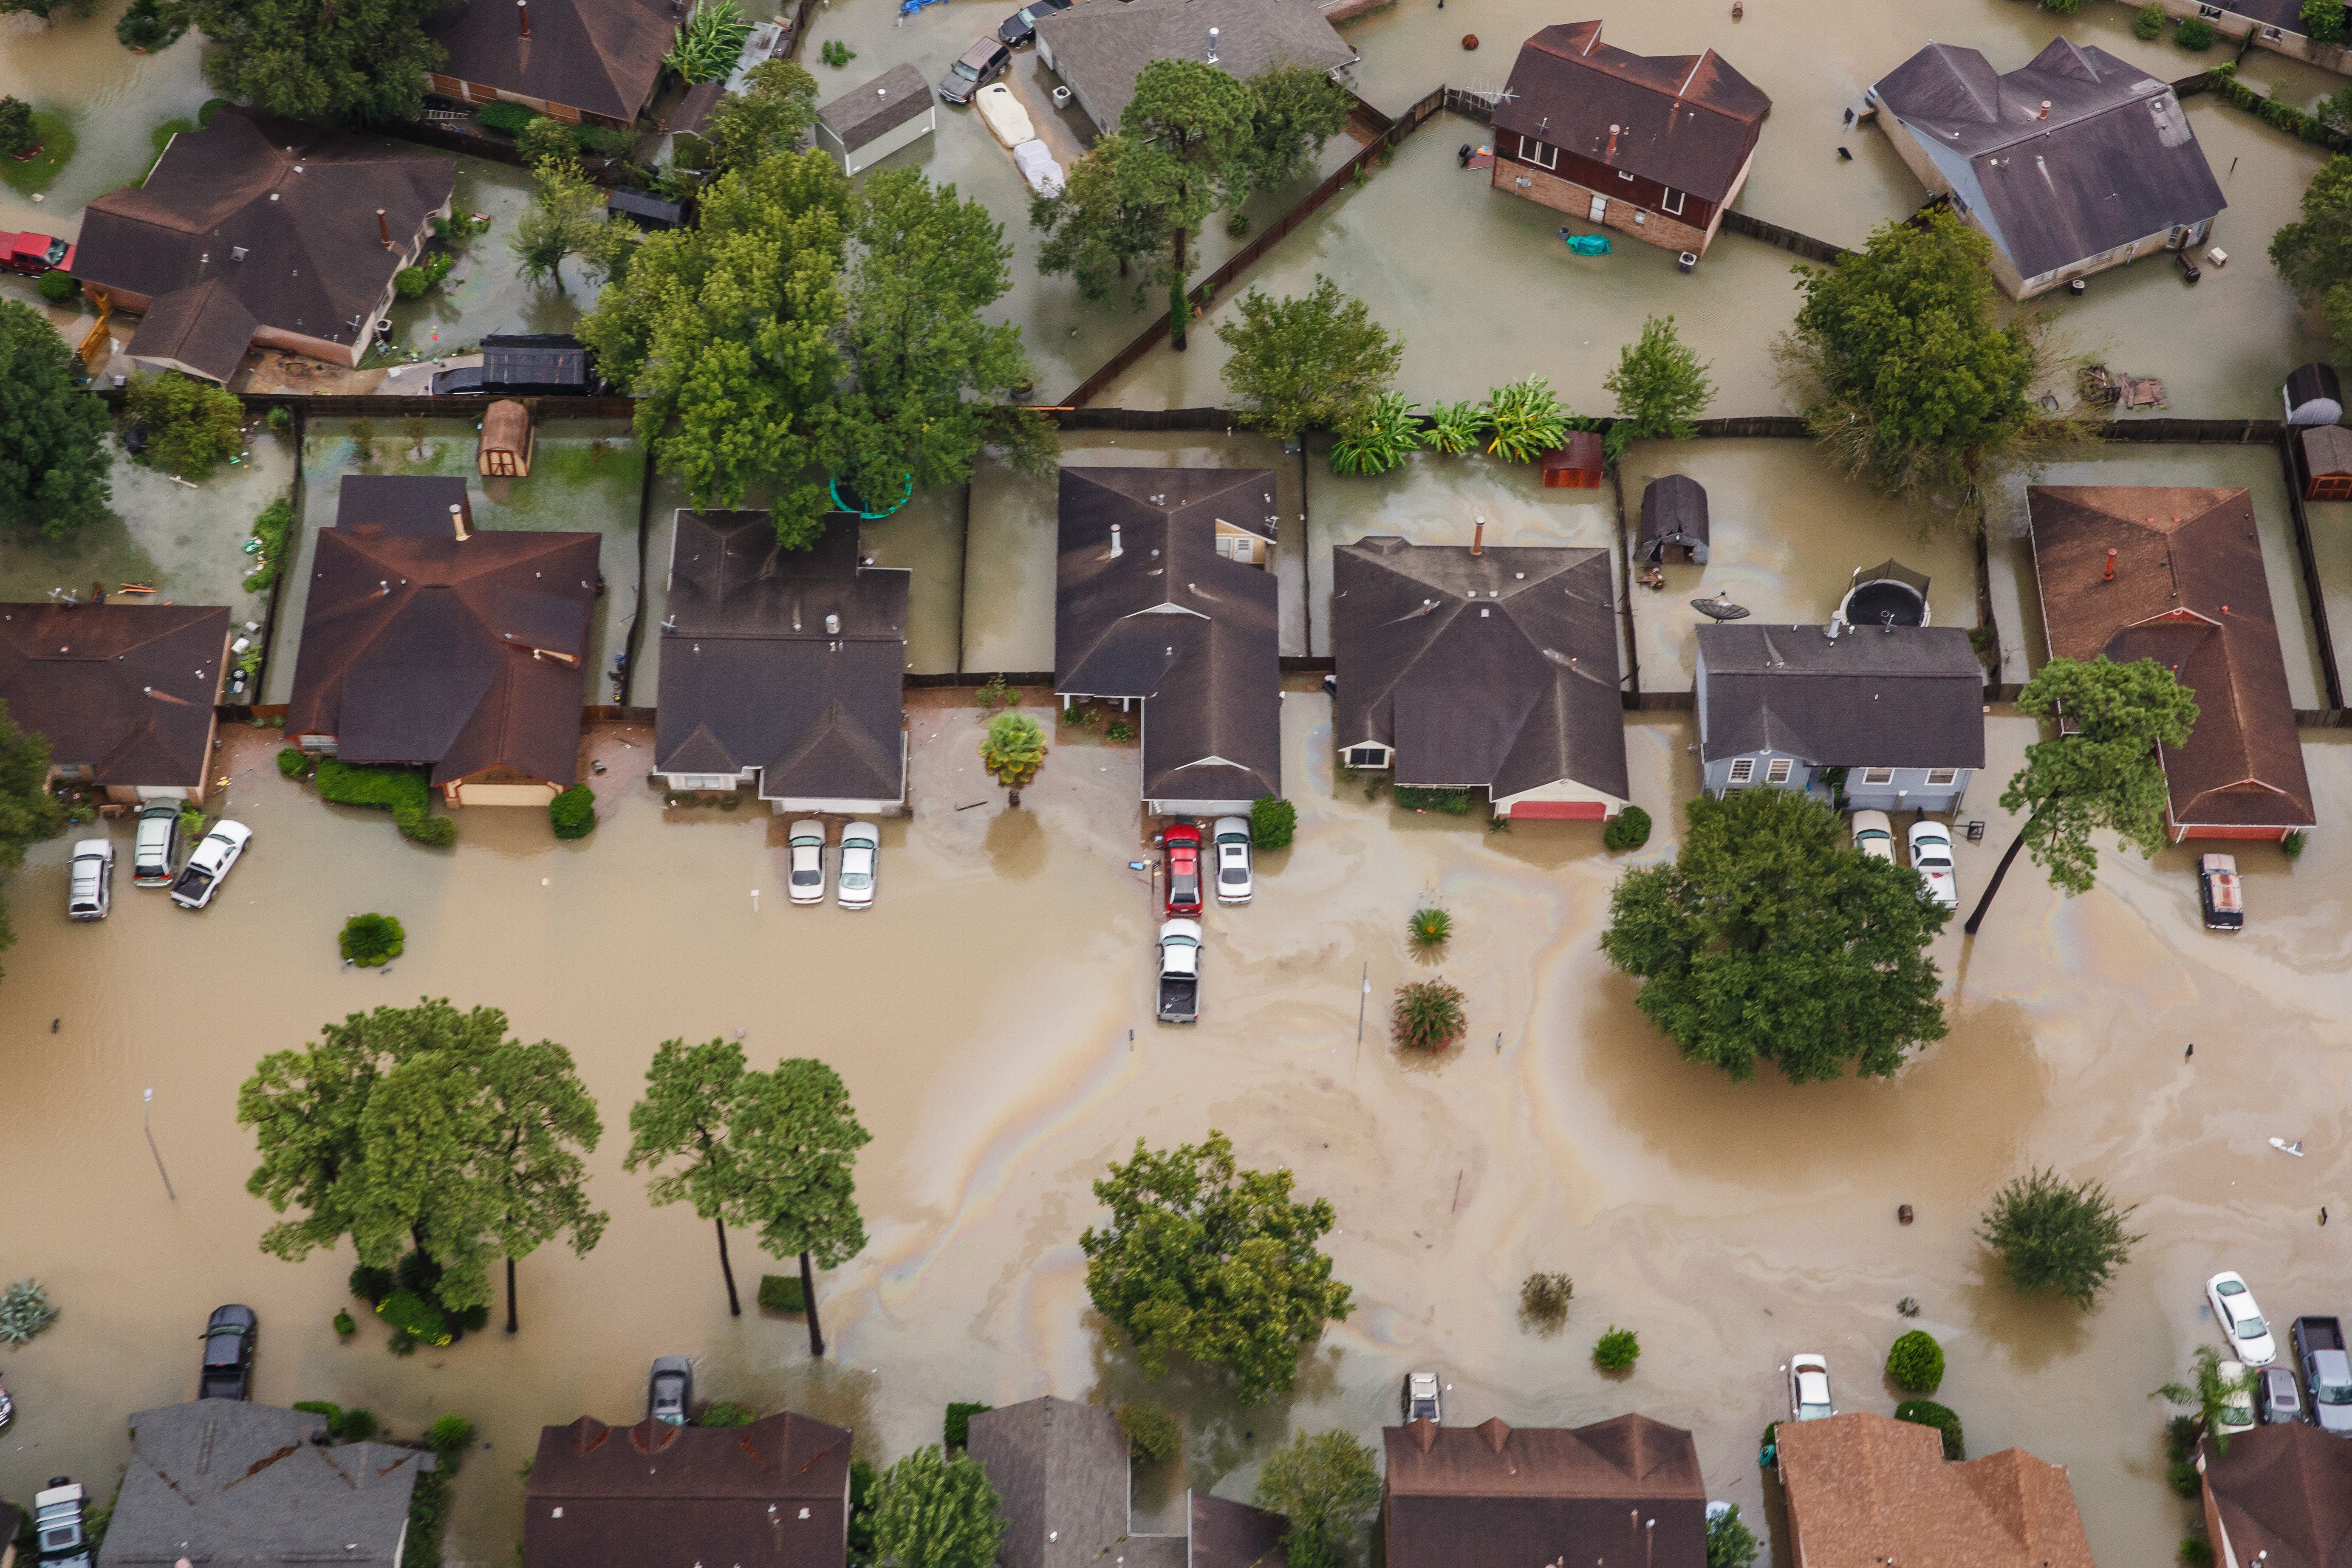 huffpost.com - Sophie Kasakove - 3 Years After Hurricane Harvey, Many Houston Homeowners Don't Know Who's At Risk Next